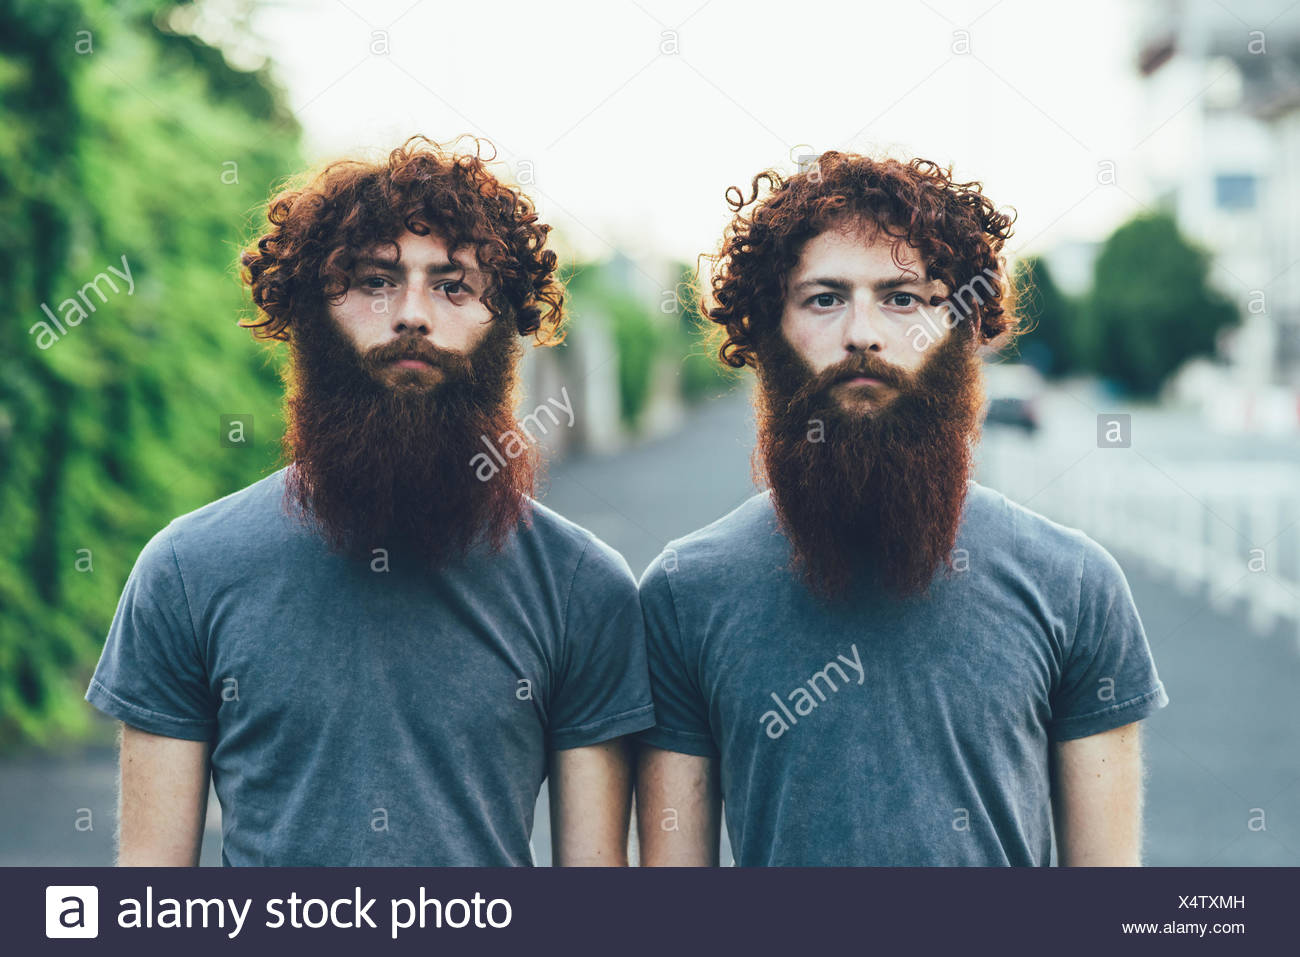 Portrait of identical adult male twins with red hair and beards on sidewalk Stock Photo